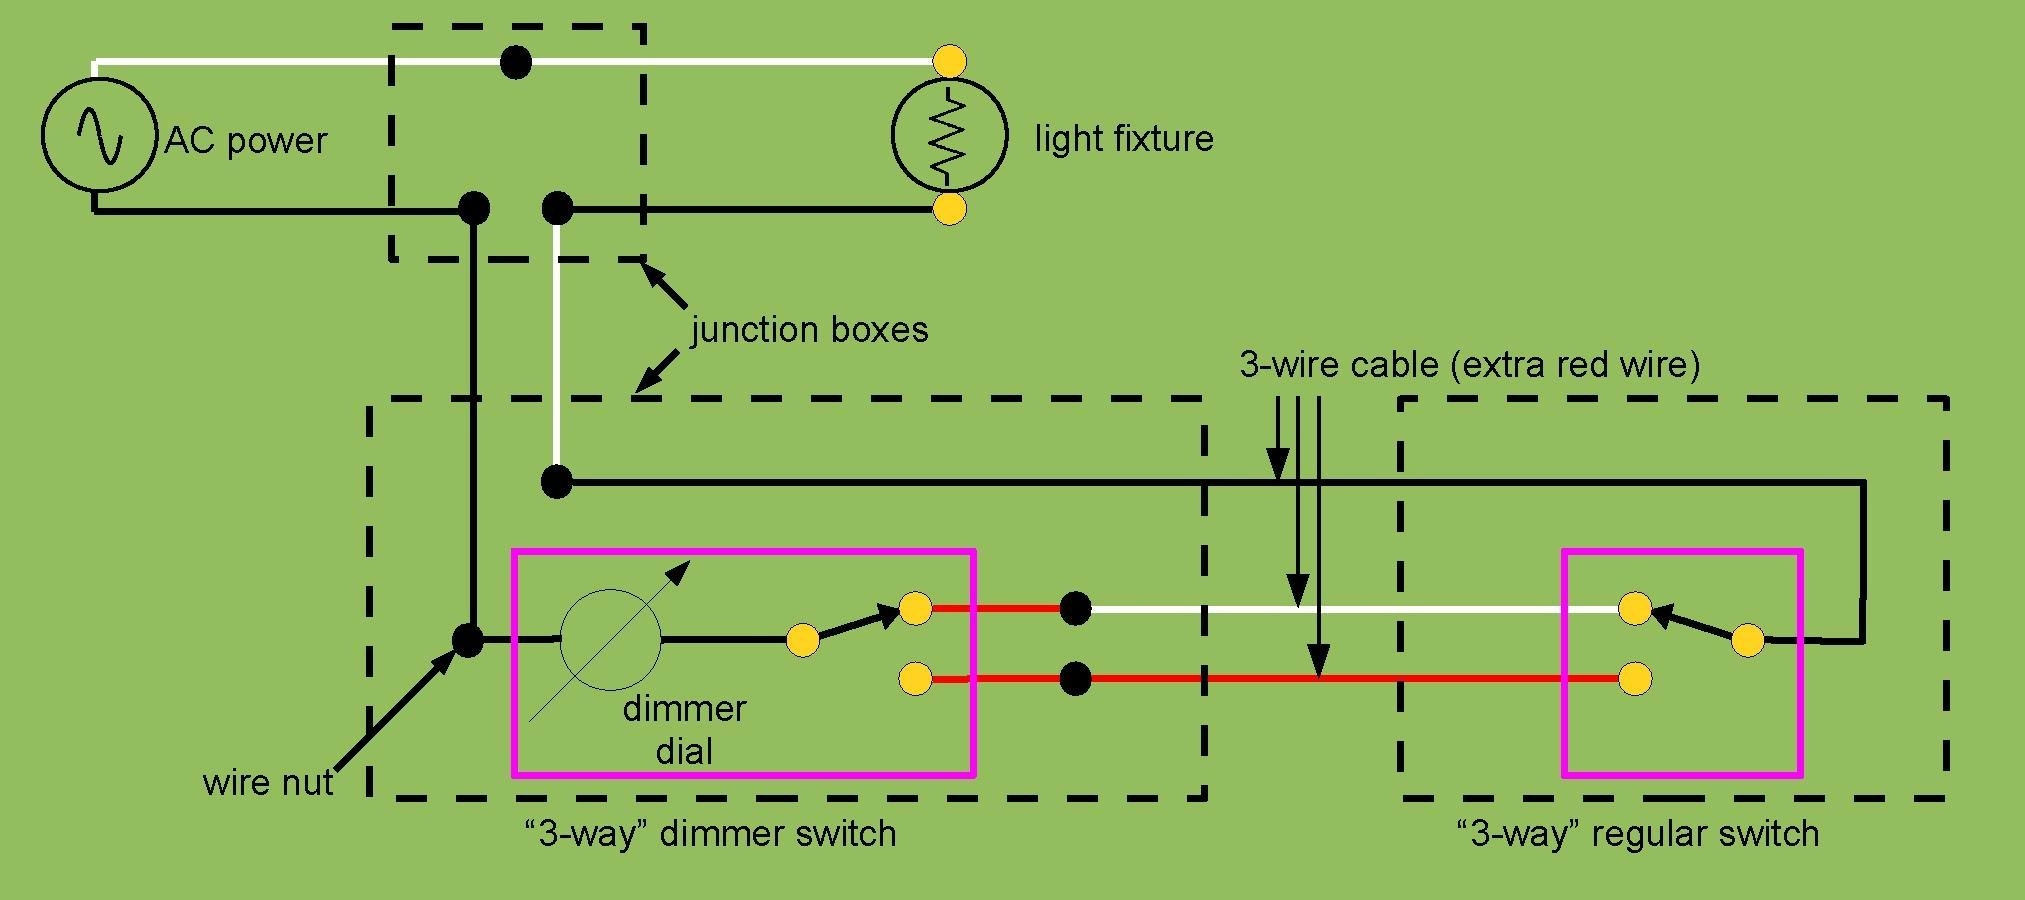 13 Good Wiring Diagram For 3 Way Switch Design 3 Way Switch Wiring Dimmer Switch Light Switch Wiring